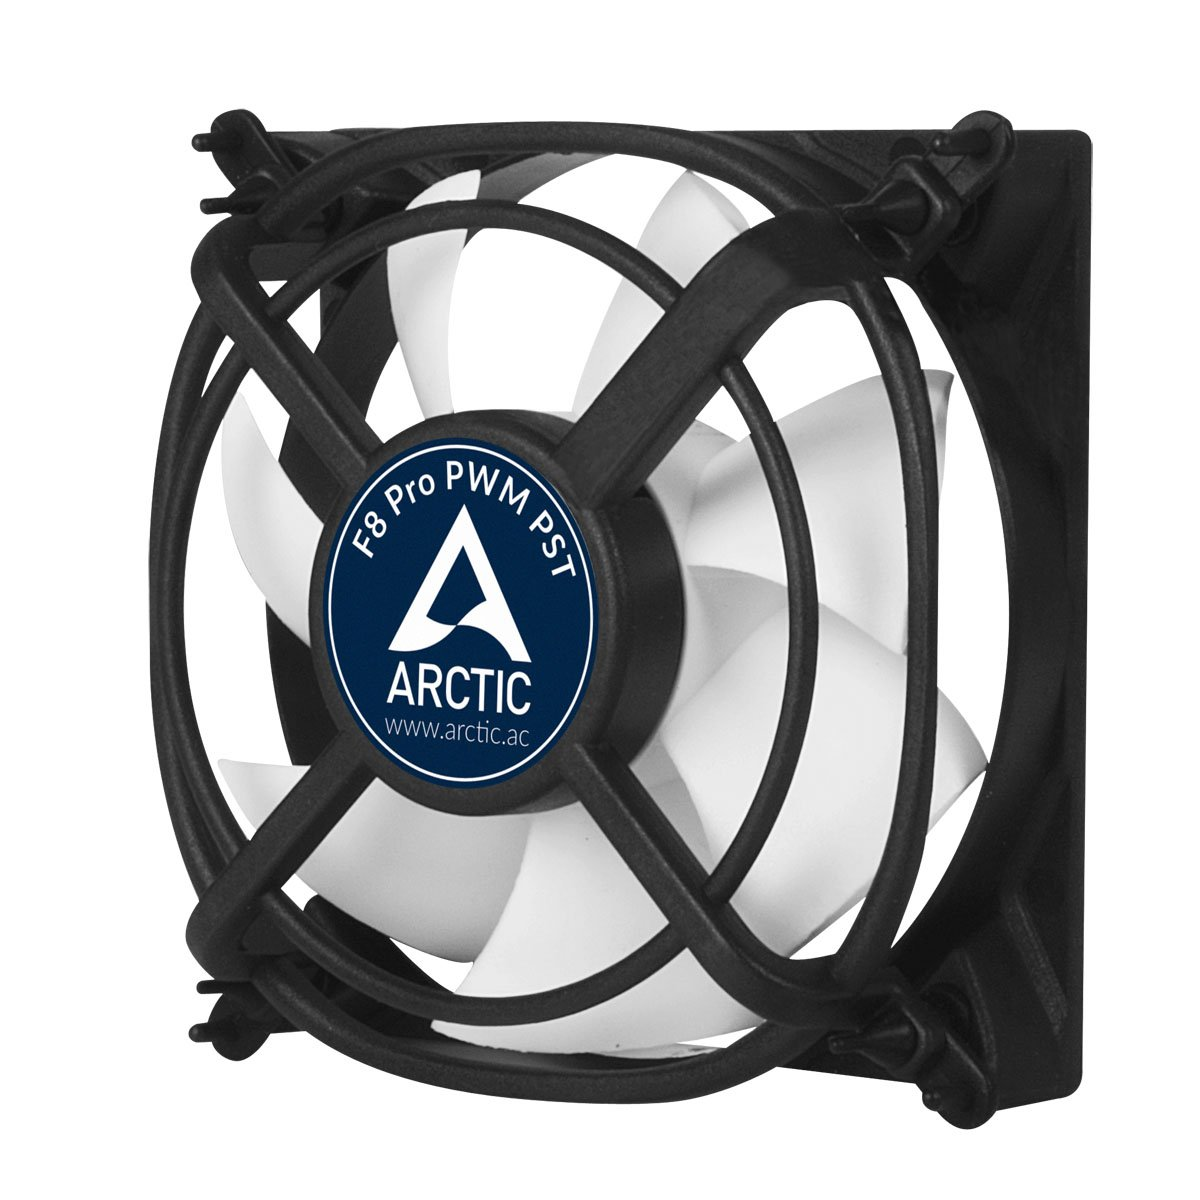 ARCTIC F8 PRO PWM PST - 80mm Fluid Dynamic Bearing Low Noise PWM Controlled Case Fan with PST Feature & Anti-Vibration System